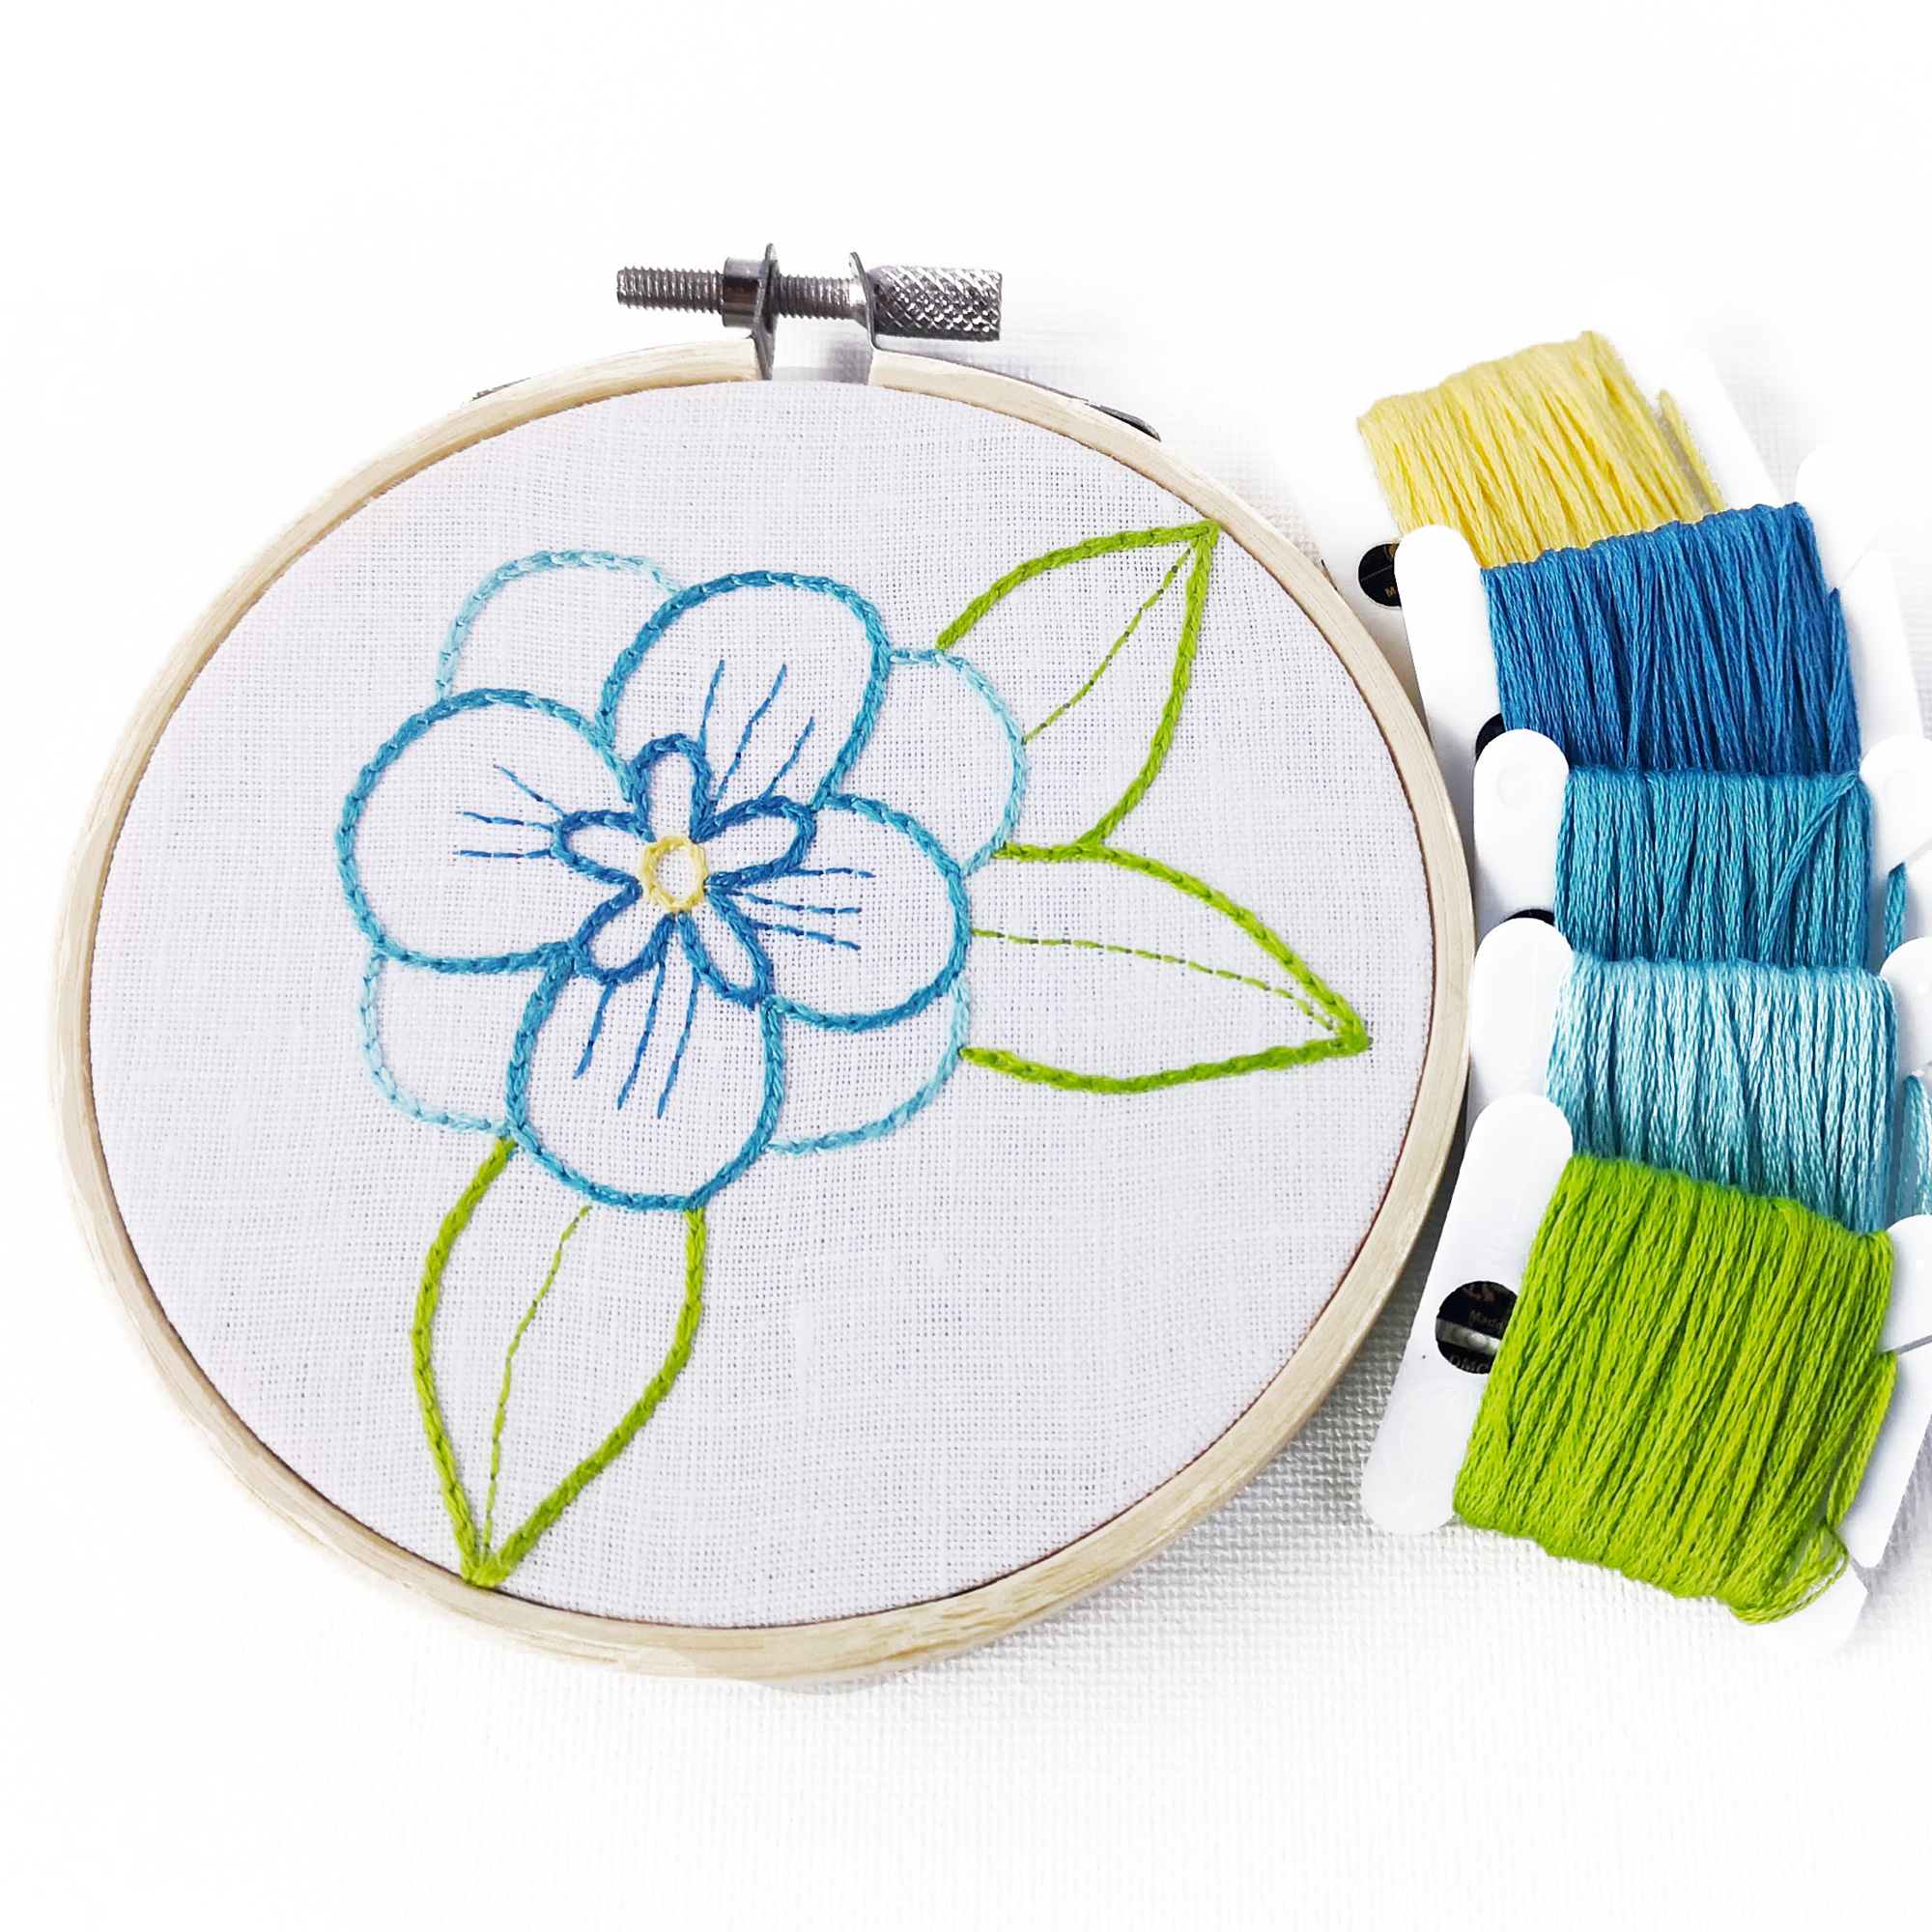 Simple floral hand embroidery pattern